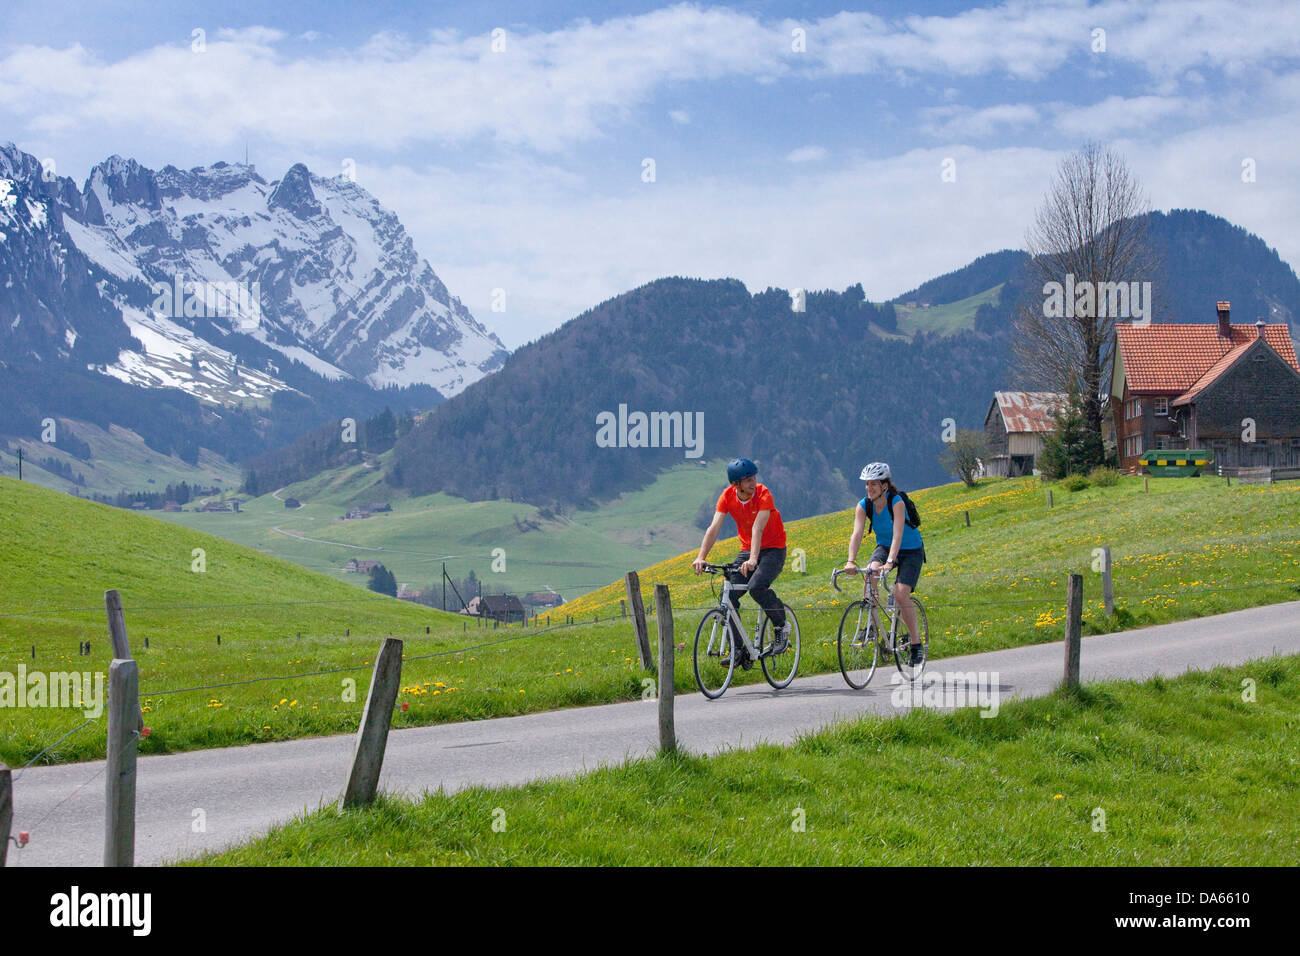 Bicycle tour, Appenzell area, canton, SG, St. Gallen, bicycle, bicycles, bike, riding a bicycle, Appenzell, Innerroden, Stock Photo